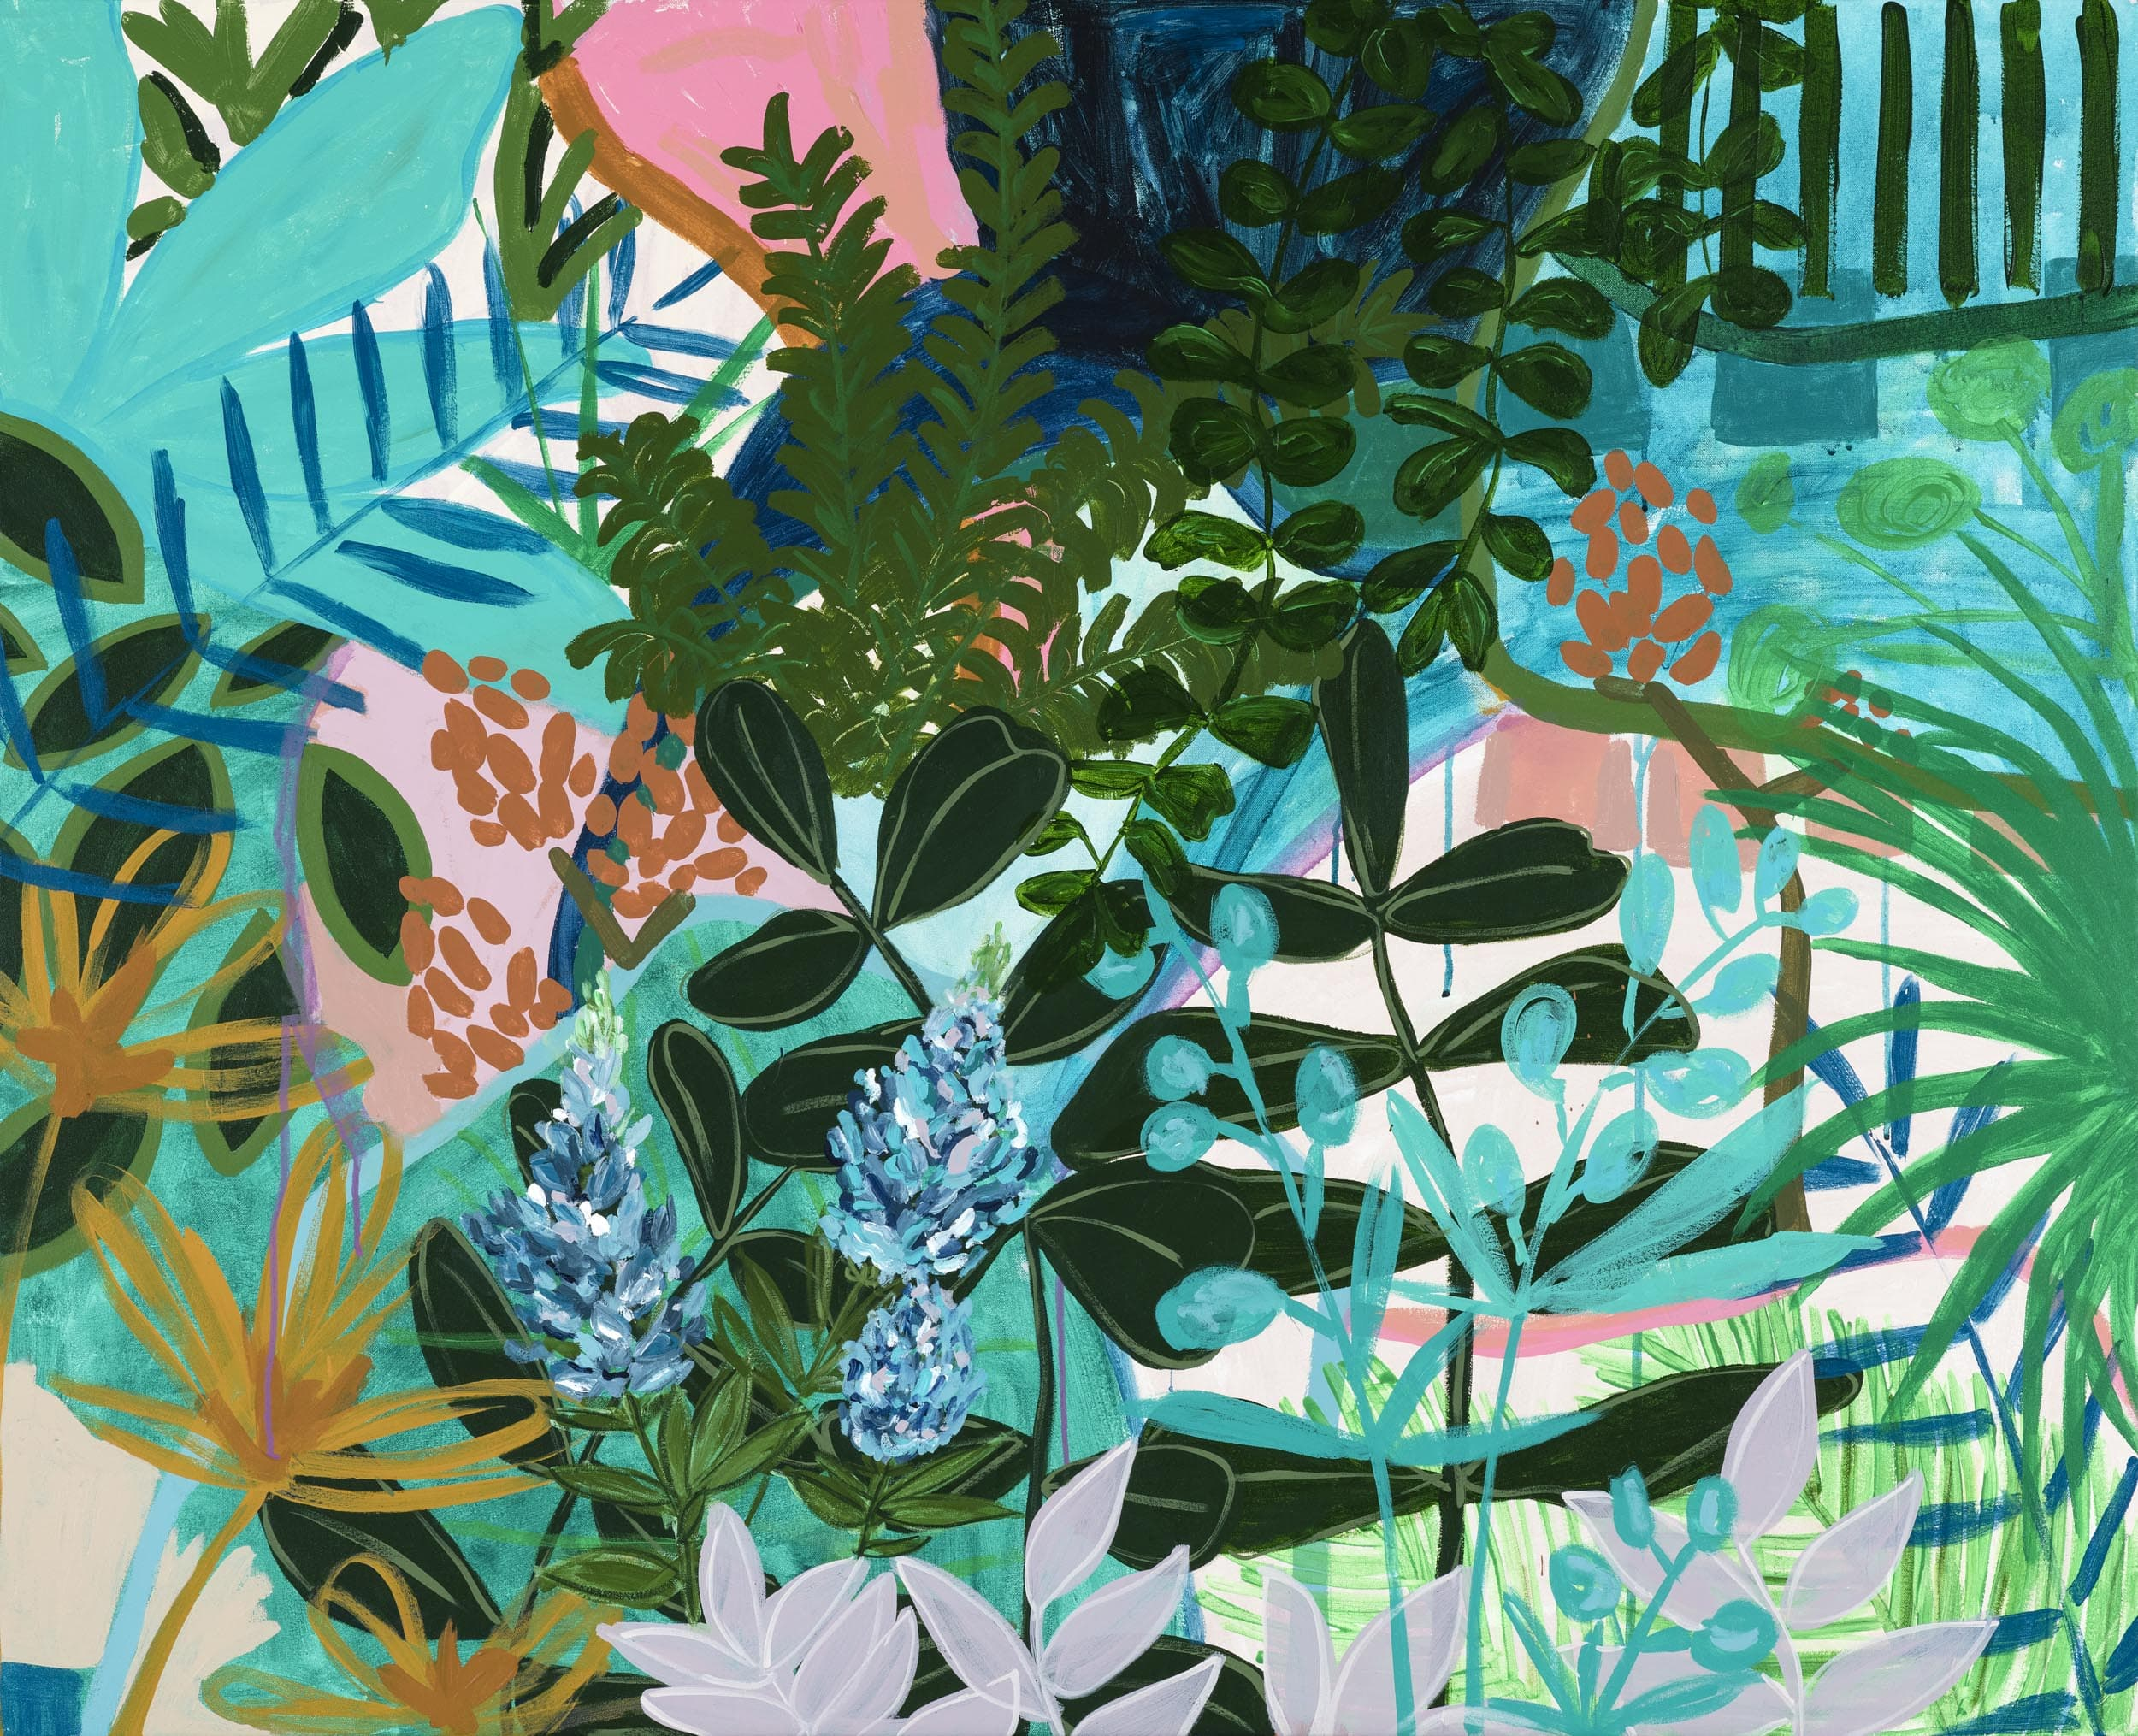 Jejune - Print-Prints-Kate Mayes-Greenhouse Interiors